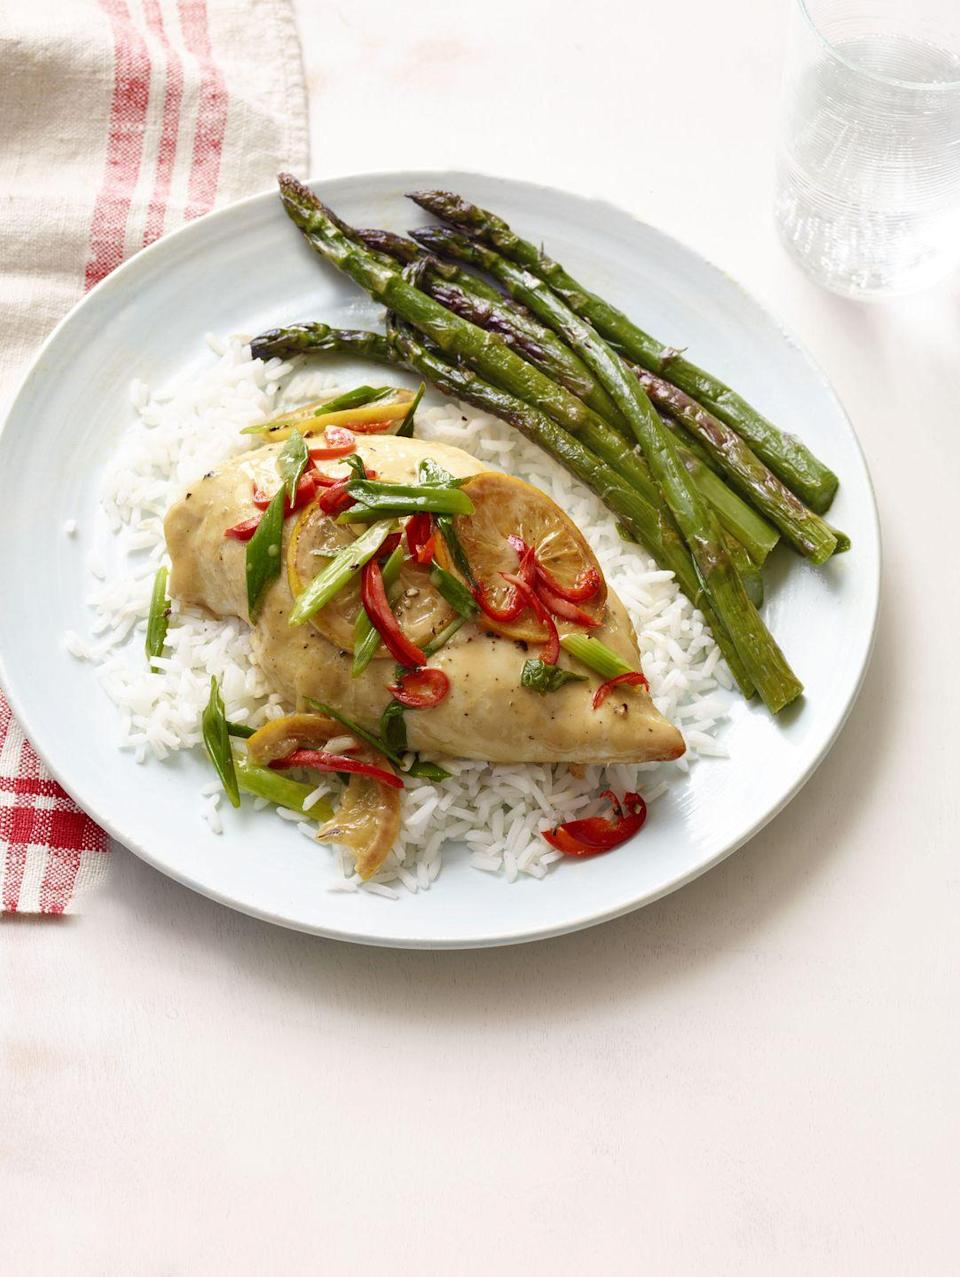 """<p>This quick, low-calorie meal is packed with tangy, lemon-infused heat, and is perfect for a fast weeknight dinner.</p><p><em><a href=""""https://www.womansday.com/food-recipes/food-drinks/recipes/a12173/lemon-chili-chicken-recipe-wdy0713/"""" rel=""""nofollow noopener"""" target=""""_blank"""" data-ylk=""""slk:Get the Lemon Chile Chicken recipe."""" class=""""link rapid-noclick-resp"""">Get the Lemon Chile Chicken recipe.</a></em><br></p>"""